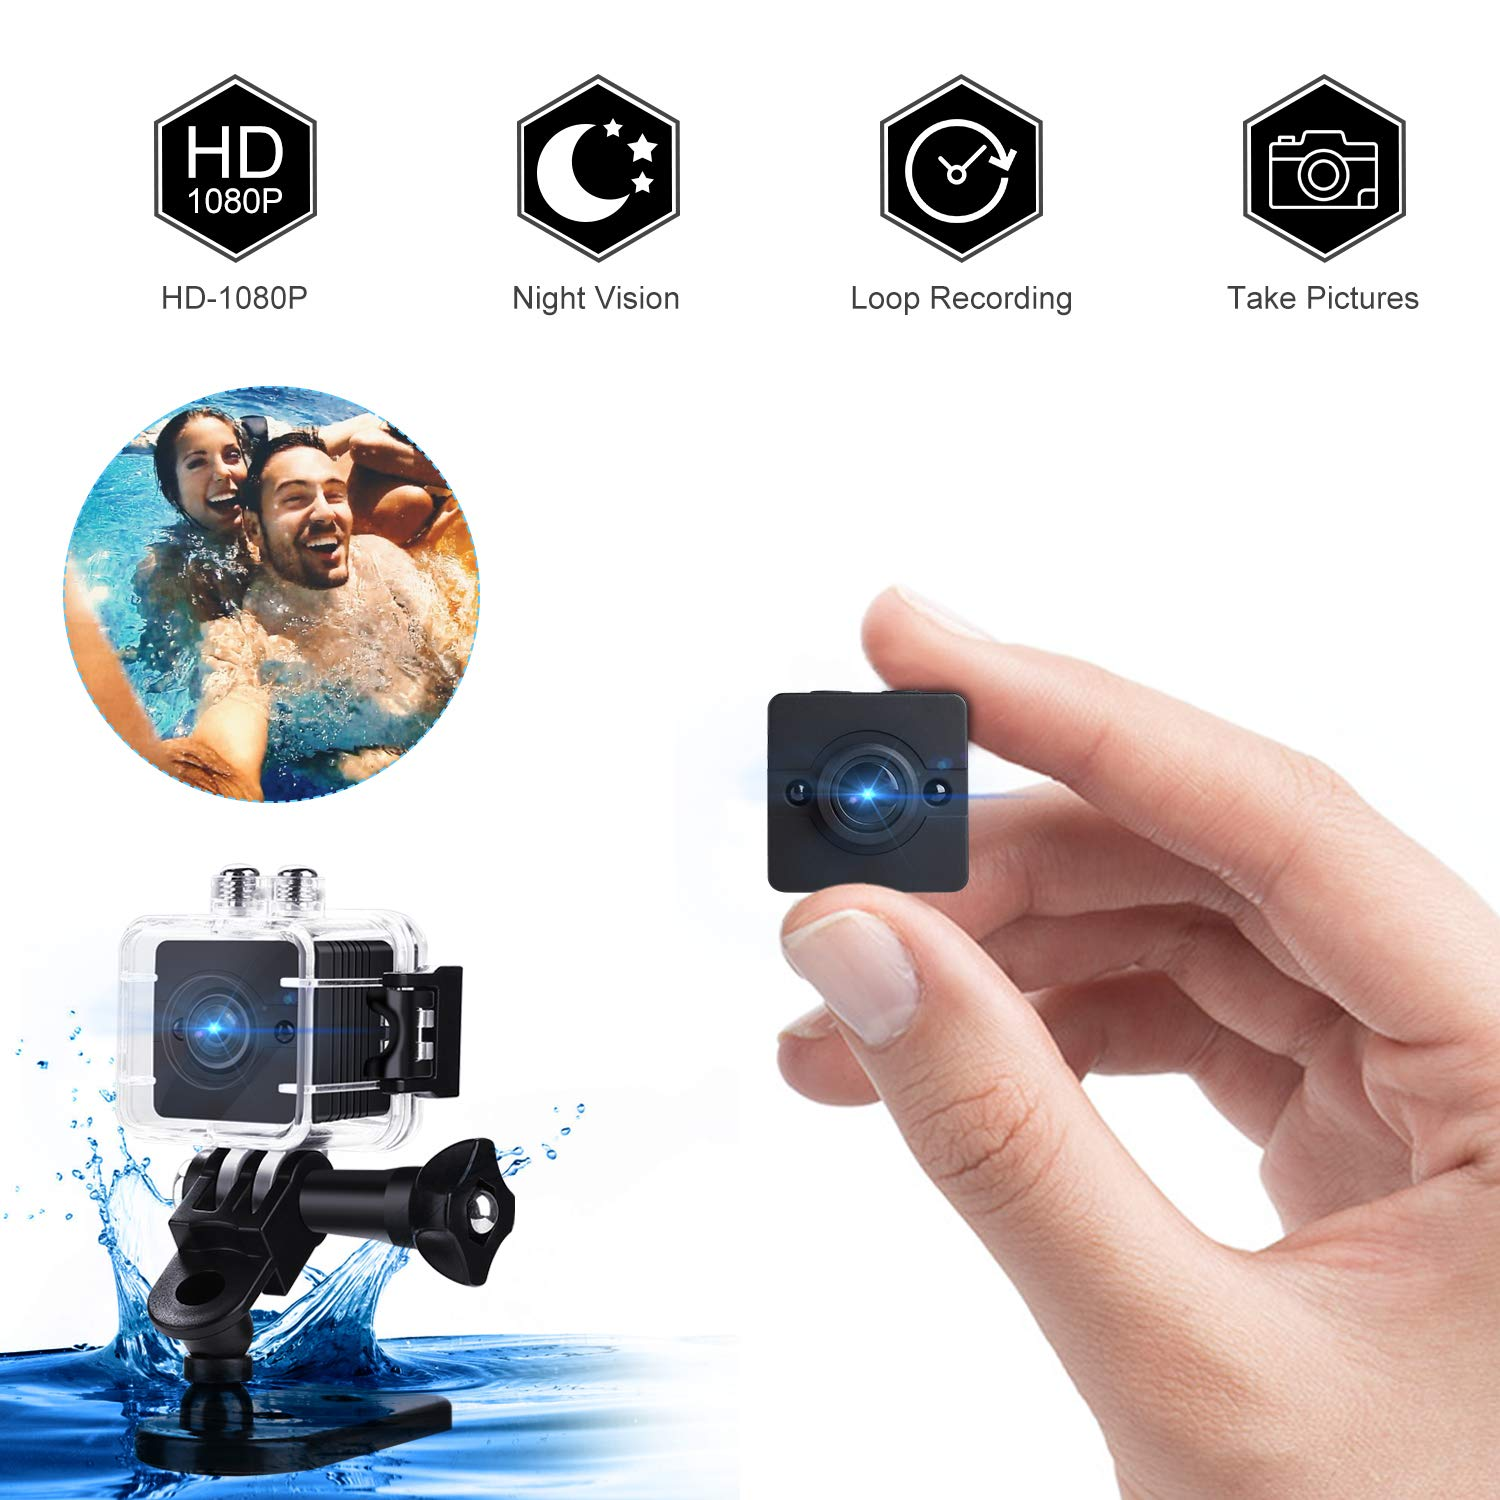 Mini Spy Hidden Camera, Waterproof Portable Hidden Camera CMOS Image Processing Technology Tiny Spy Camera,1080P HD Nanny Cam – Security Camera for Home Surfing Snorkeling Biking and Camping